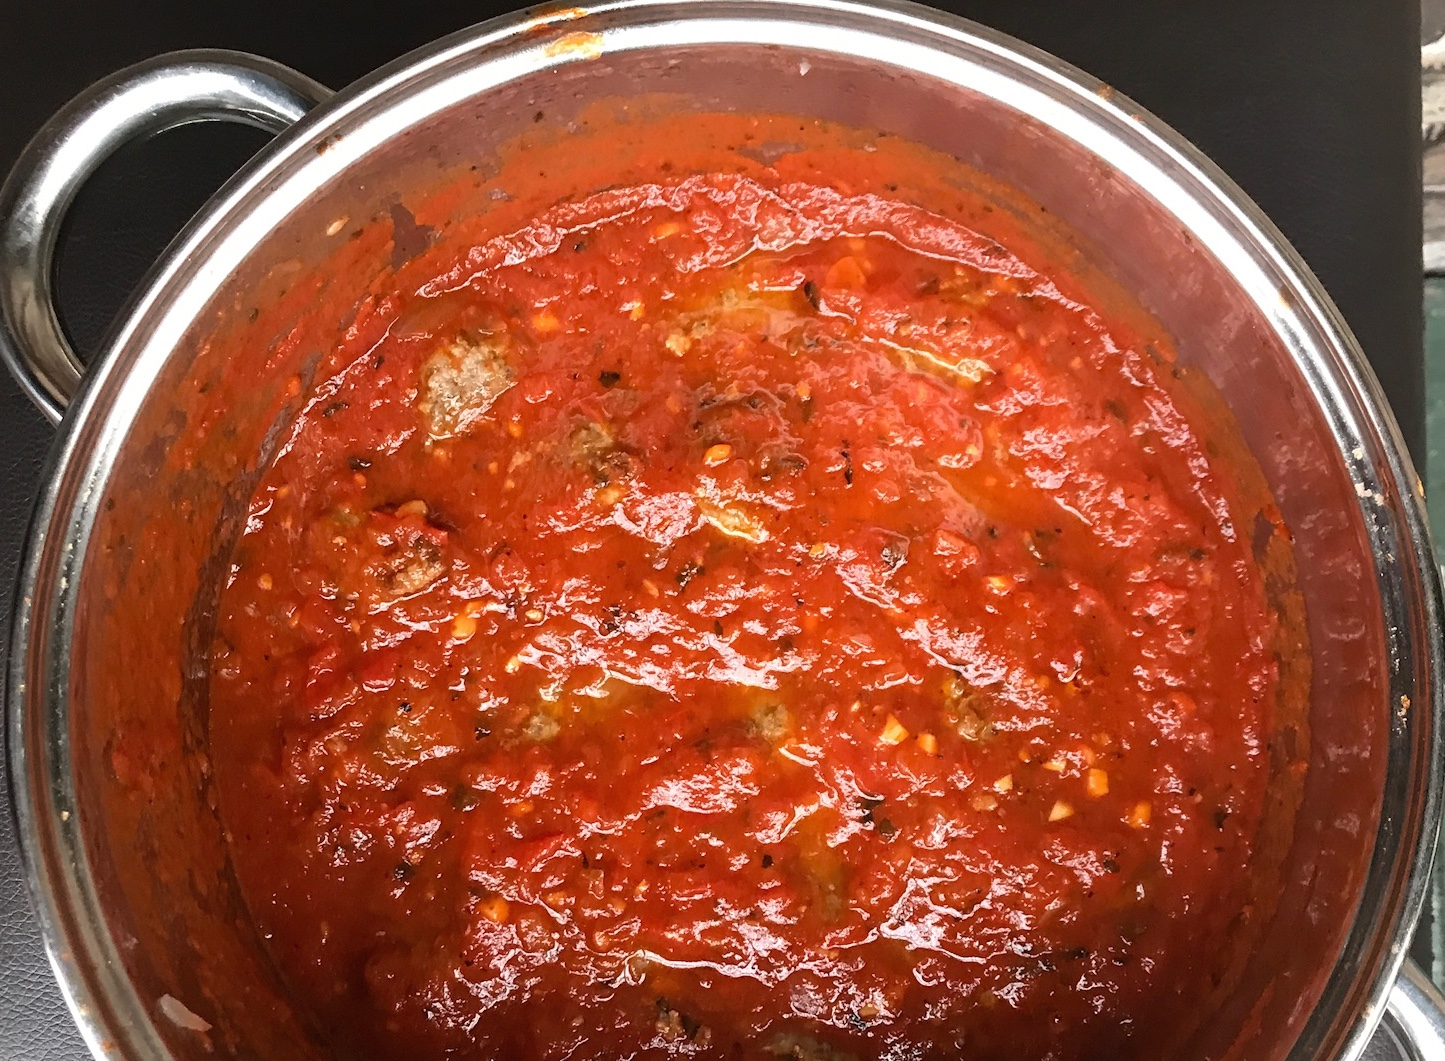 - Let the tomato mixture cook for 15-20 minutes, or until the crushed tomatoes begin to break down. Add the salt, pepper, sugar, basil, oregano, and Italian seasonings, cover,and allow to simmer on low heat for an additional 1.5 to 2 hours. Stir occasionally.